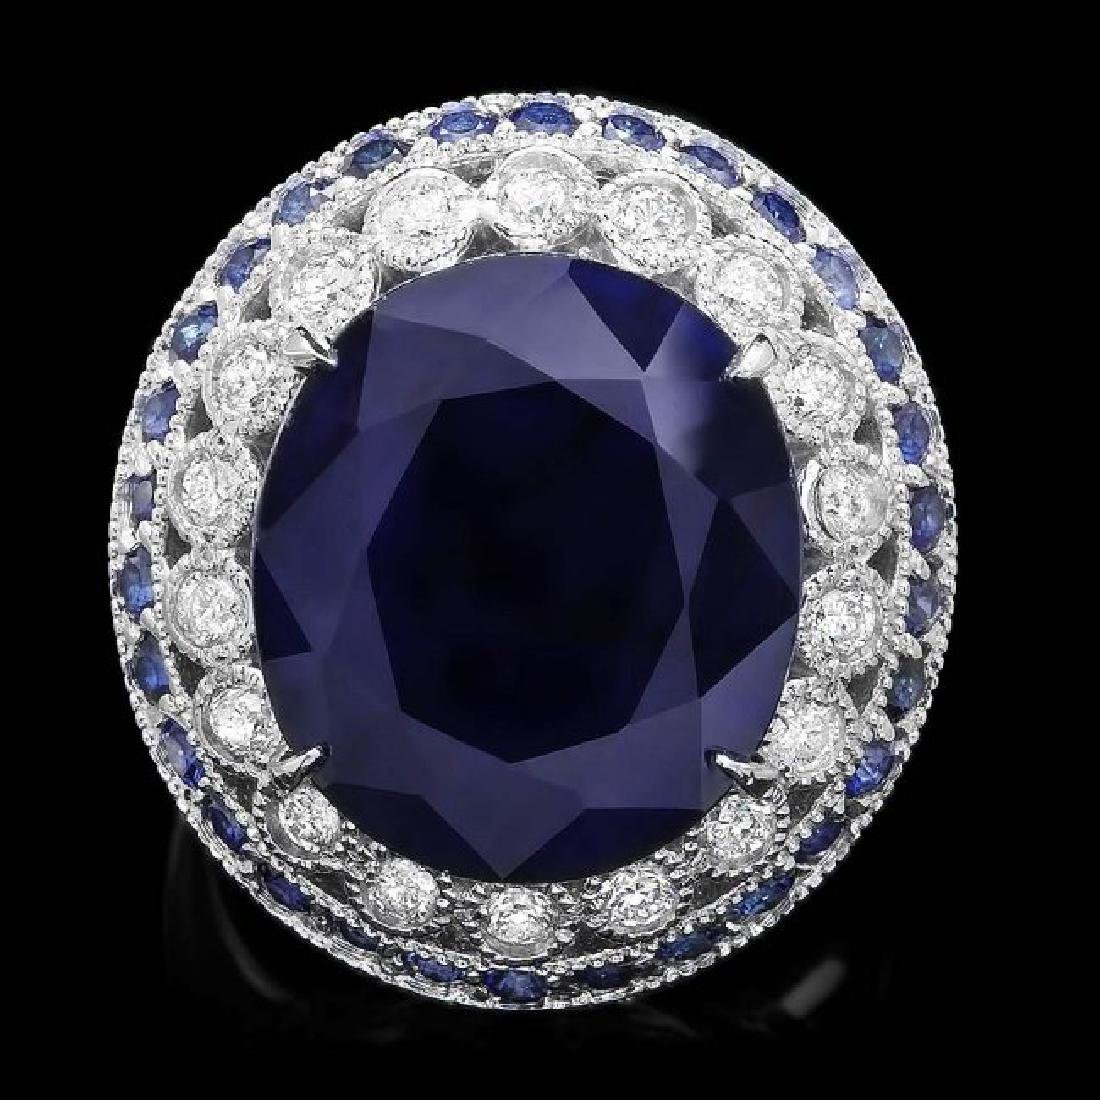 14k Gold 14.7ct Sapphire 0.80ct Diamond Ring